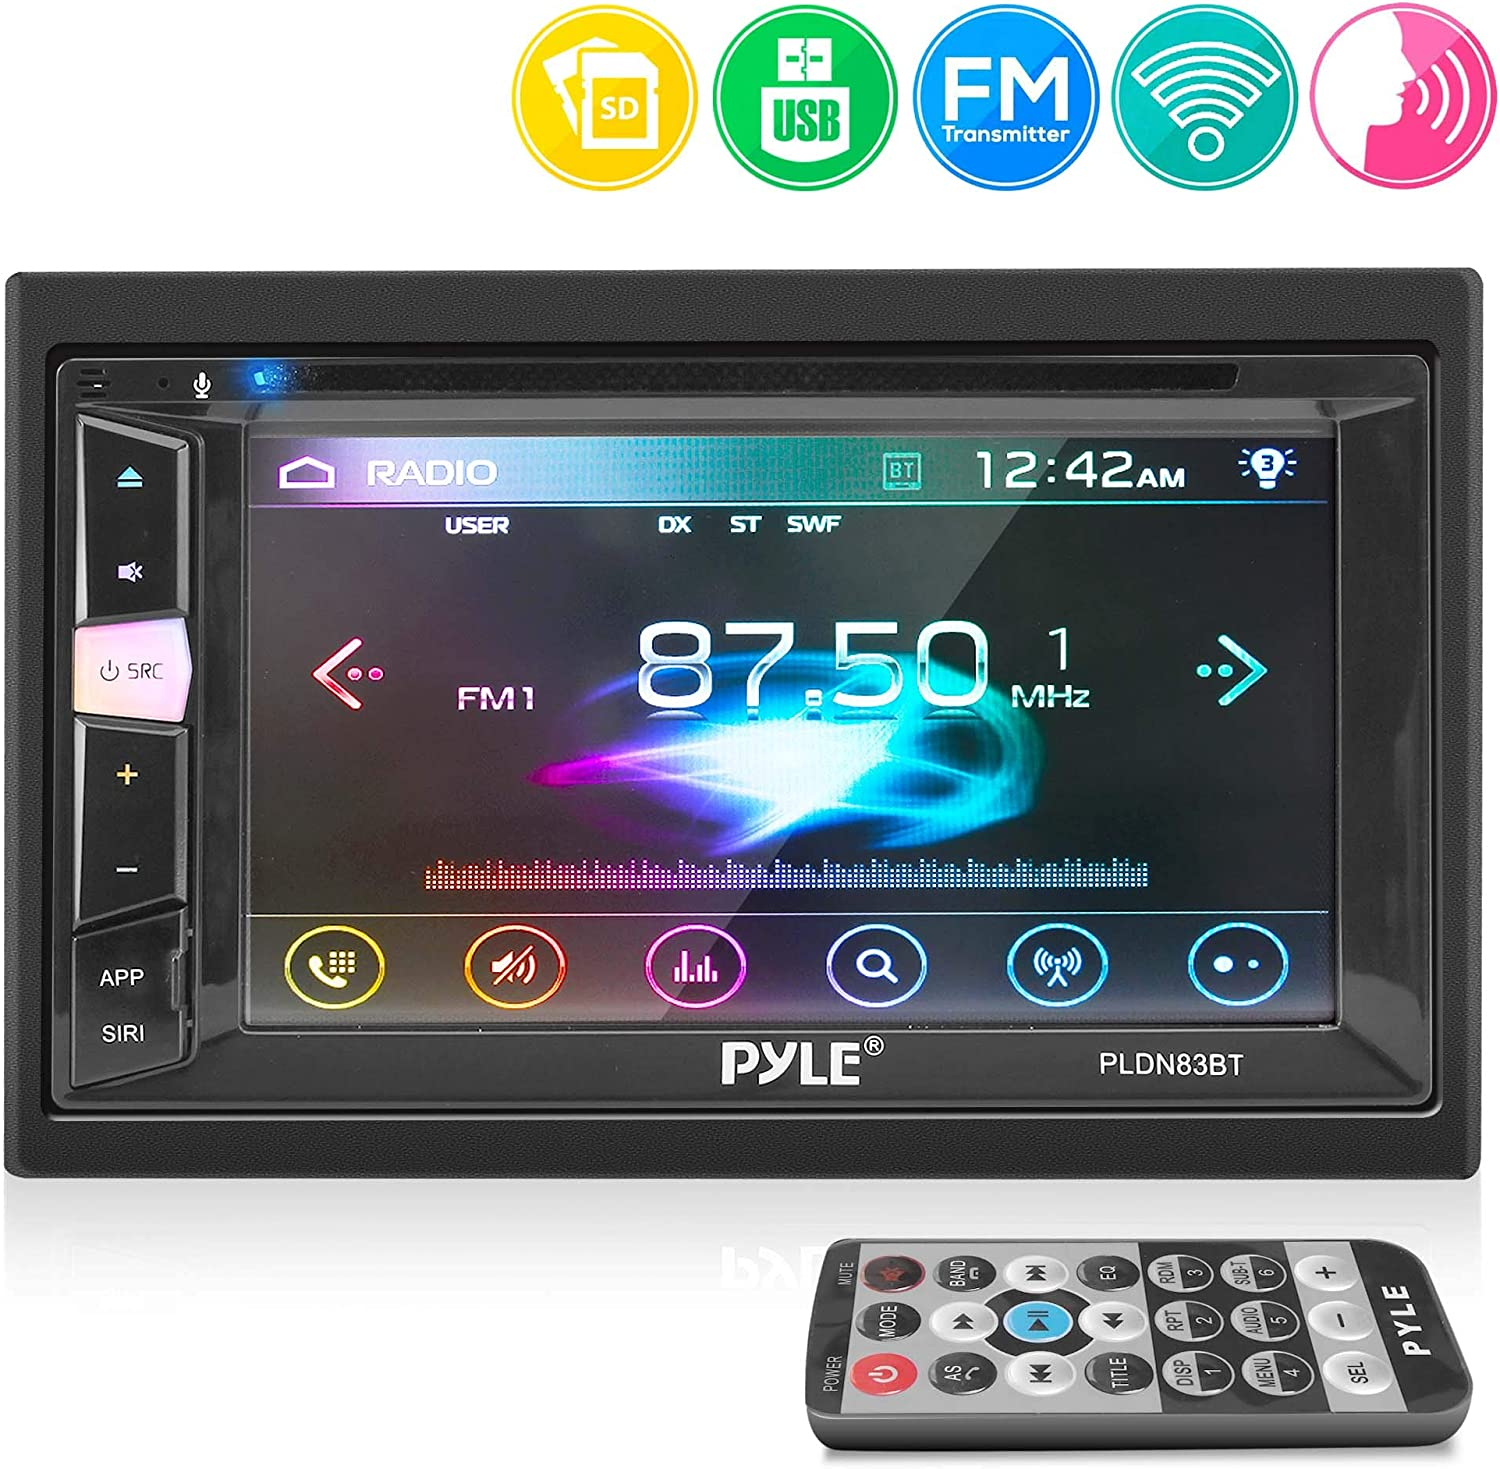 Pyle Double Din DVD Car Stereo PlayerBluetooth in-Dash Car Stereo Touch Screen Receiver w/USB/SD, MP3, CD Player, AM FM Radio, Steering Wheel Feature, Hands-Free Call, Camera/Speaker Input